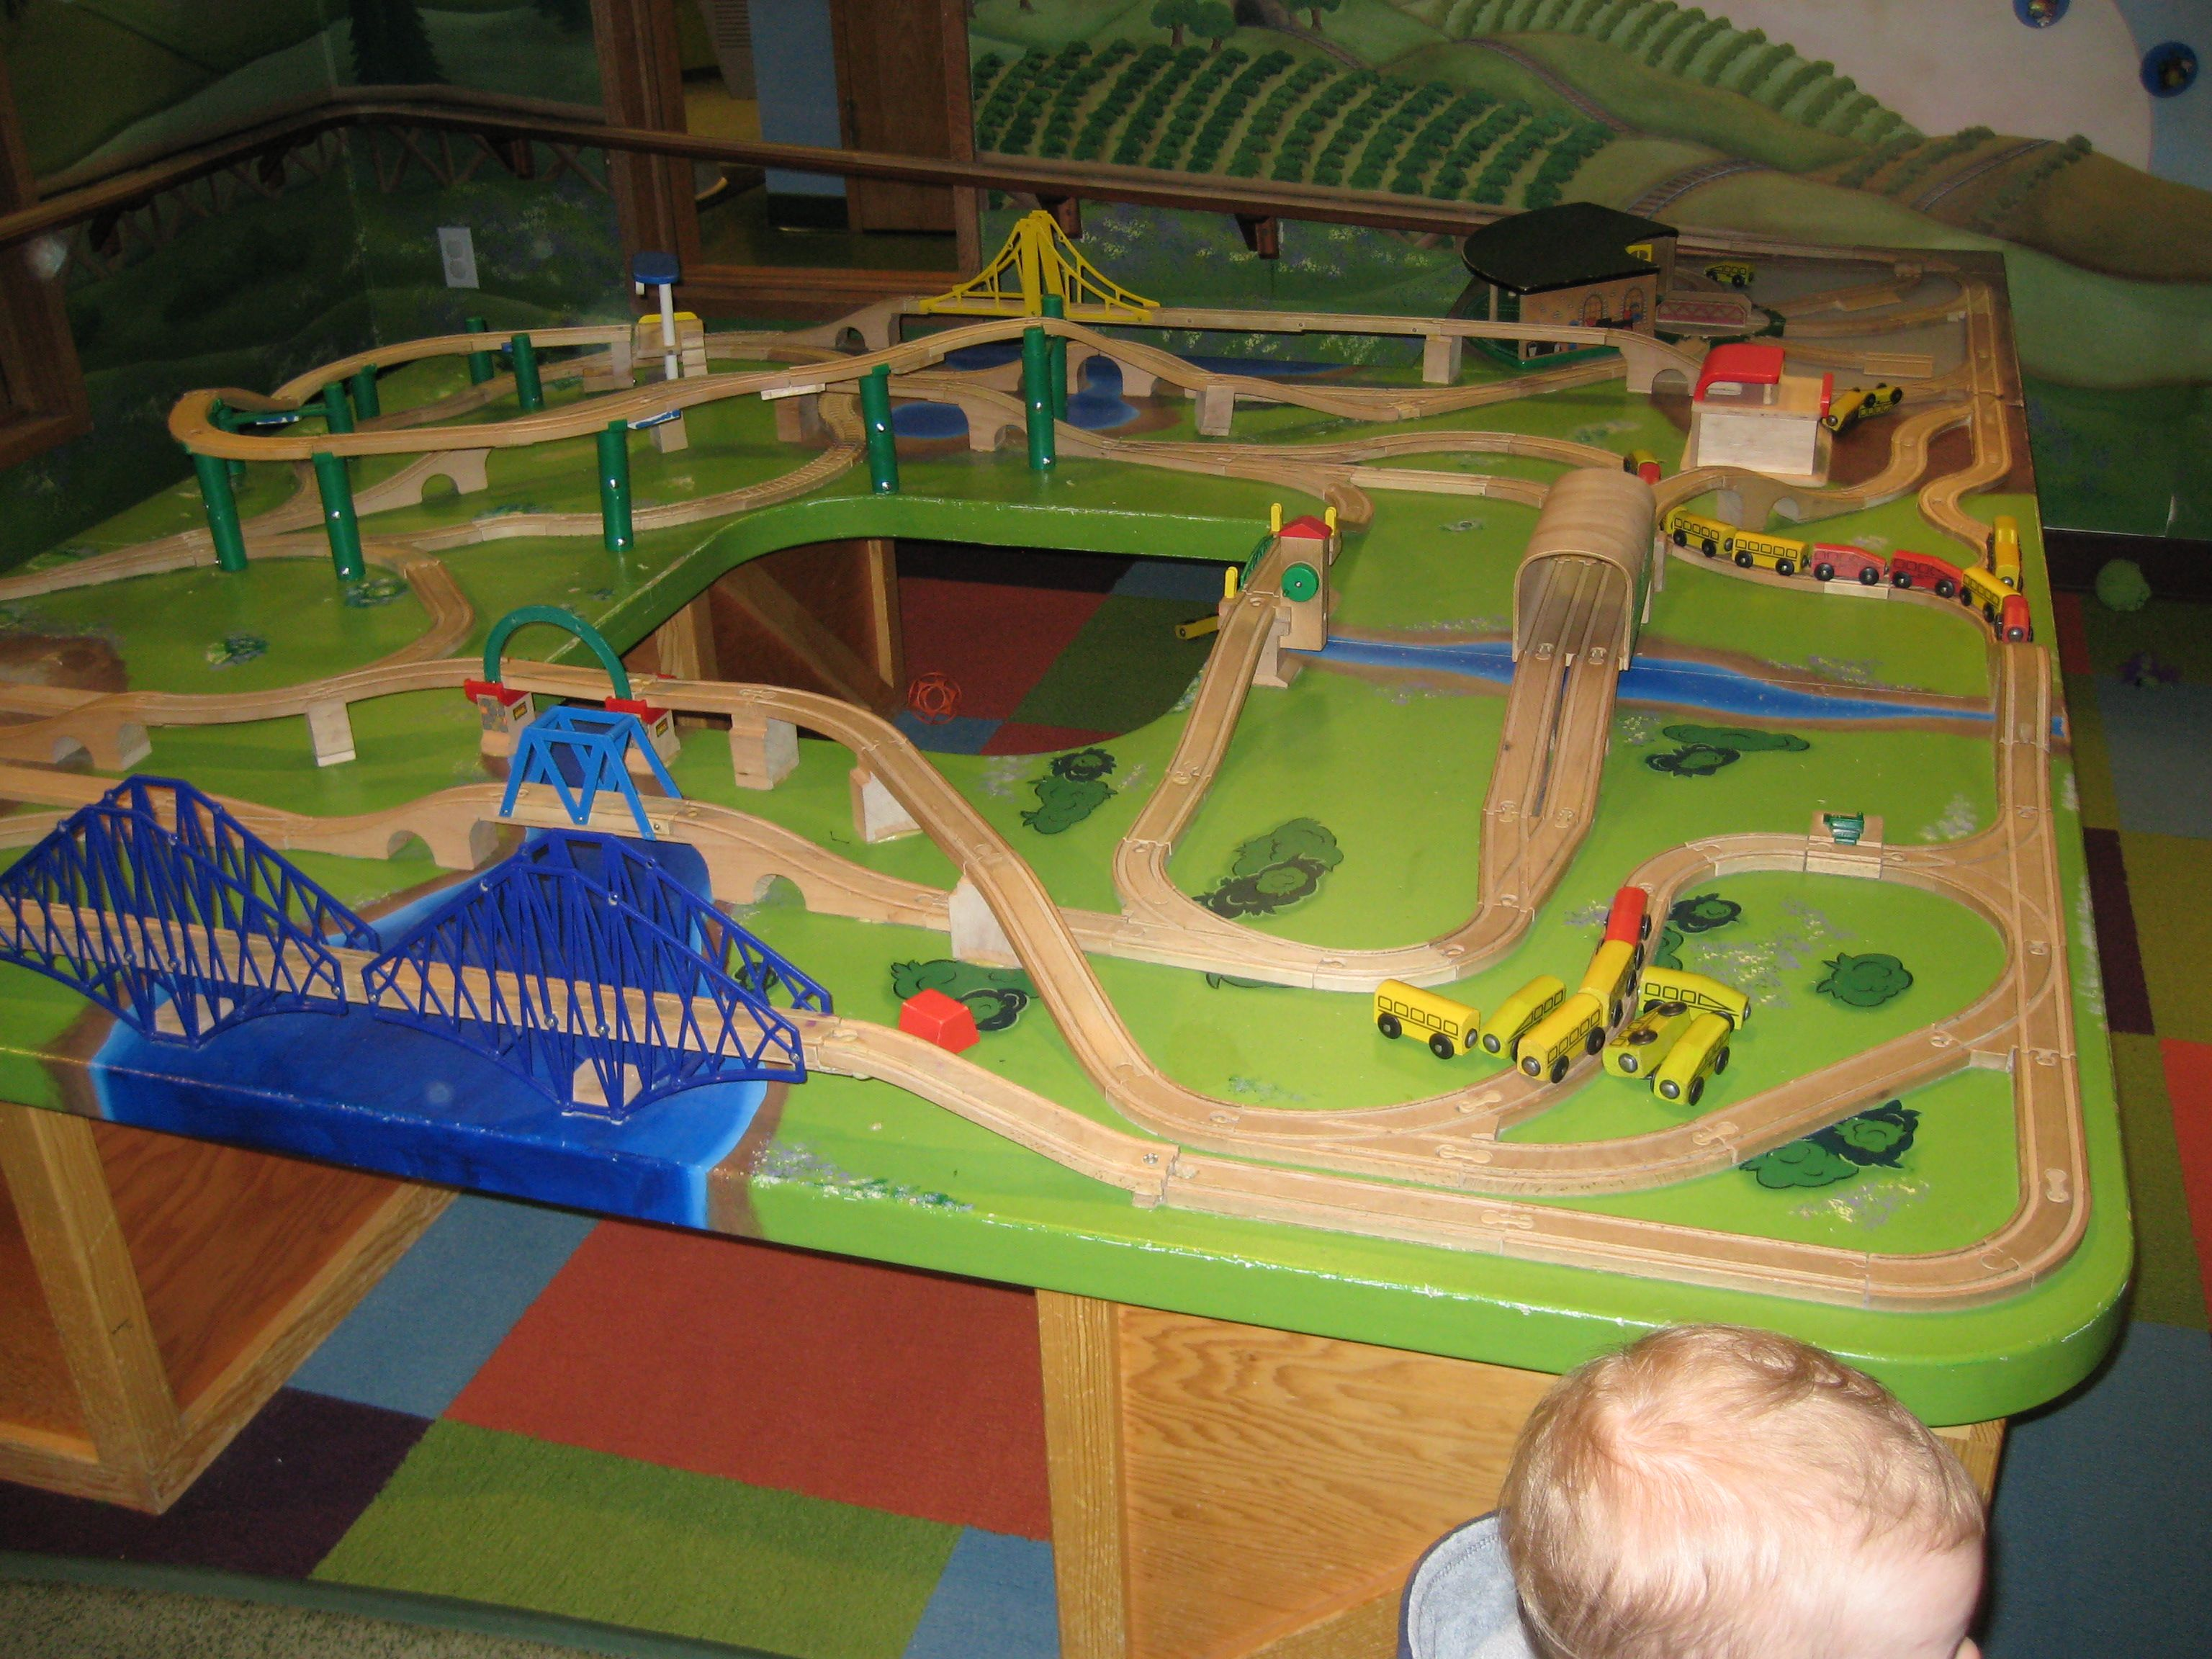 They Have A Big Train Table Set Upu2026 U2026 And ...